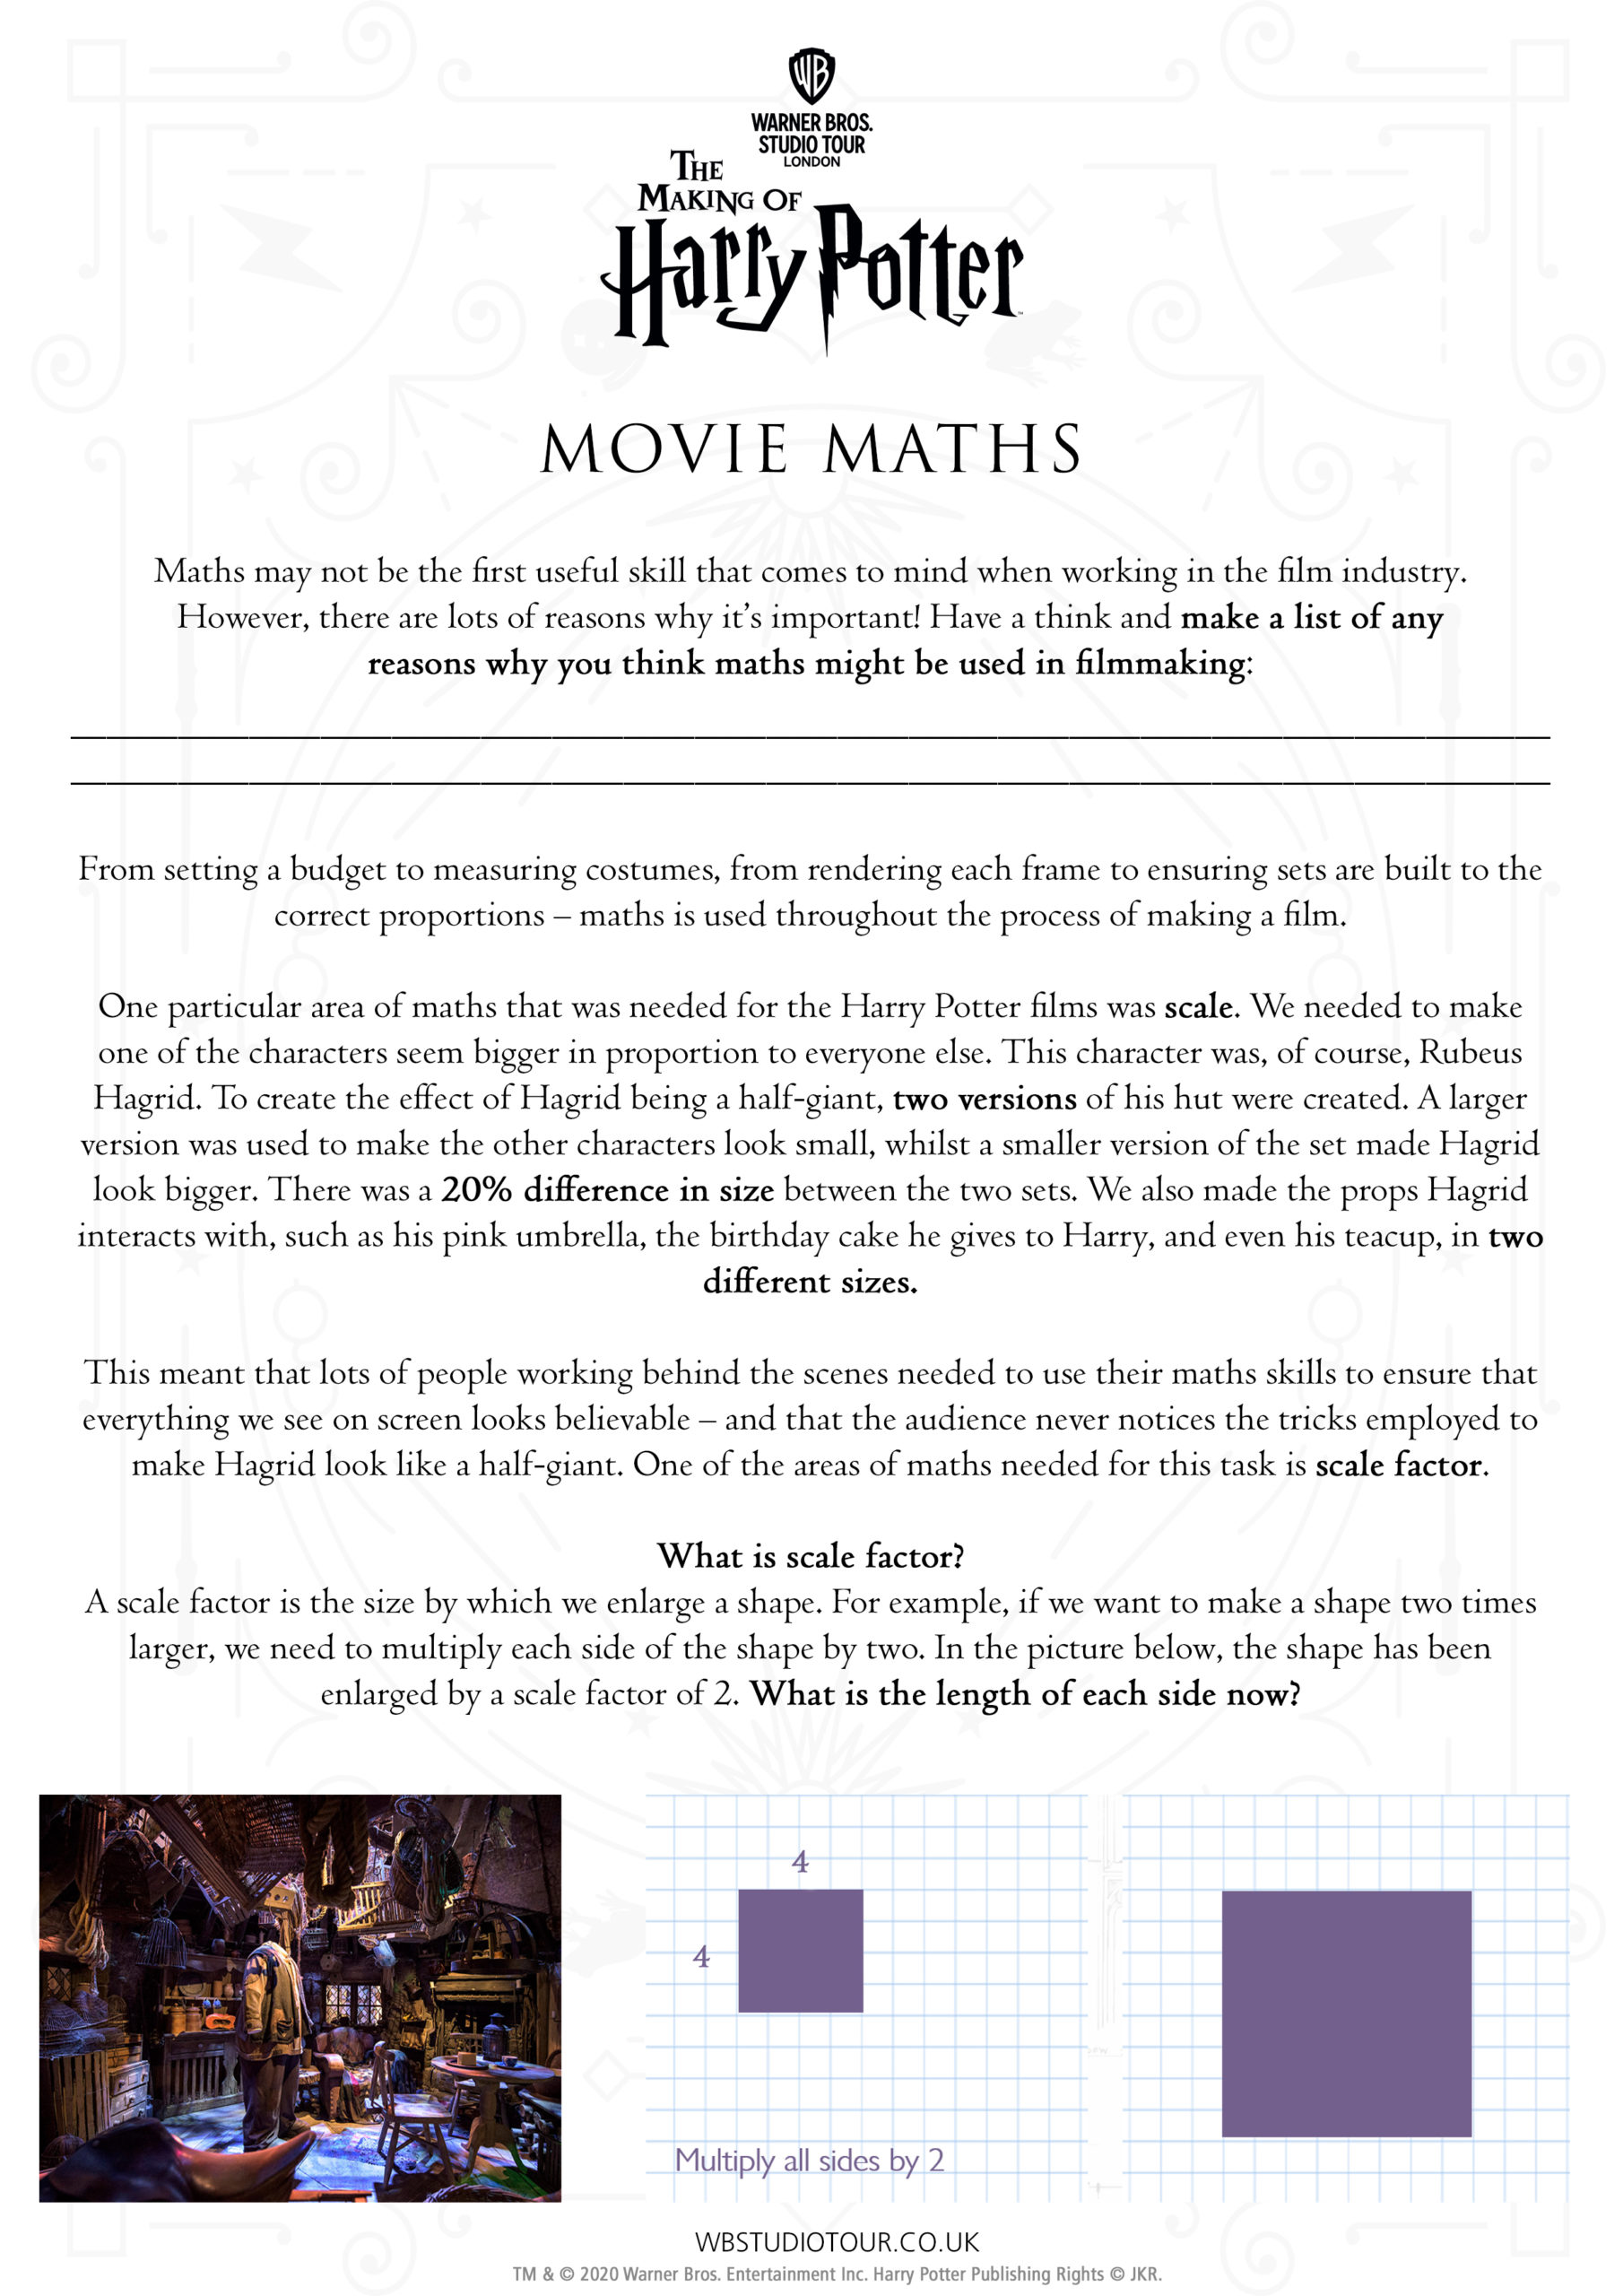 Movie Maths activity worksheets page 1 - Studio Tour at Home